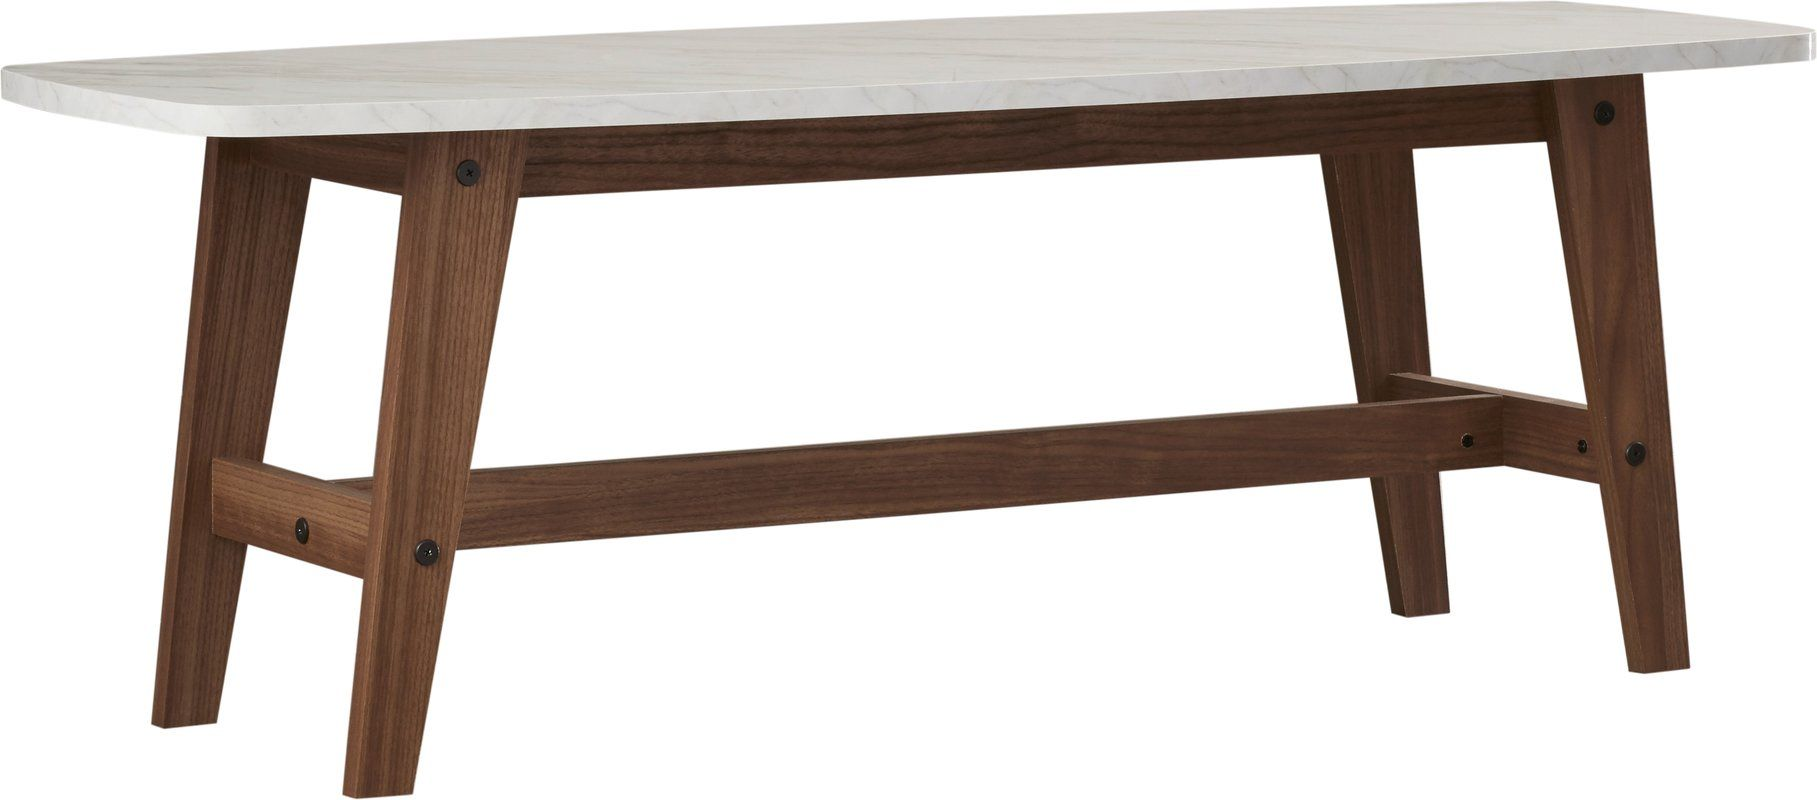 Pryer Coffee Table McK Pinterest Living Rooms And Room - Kendall coffee table